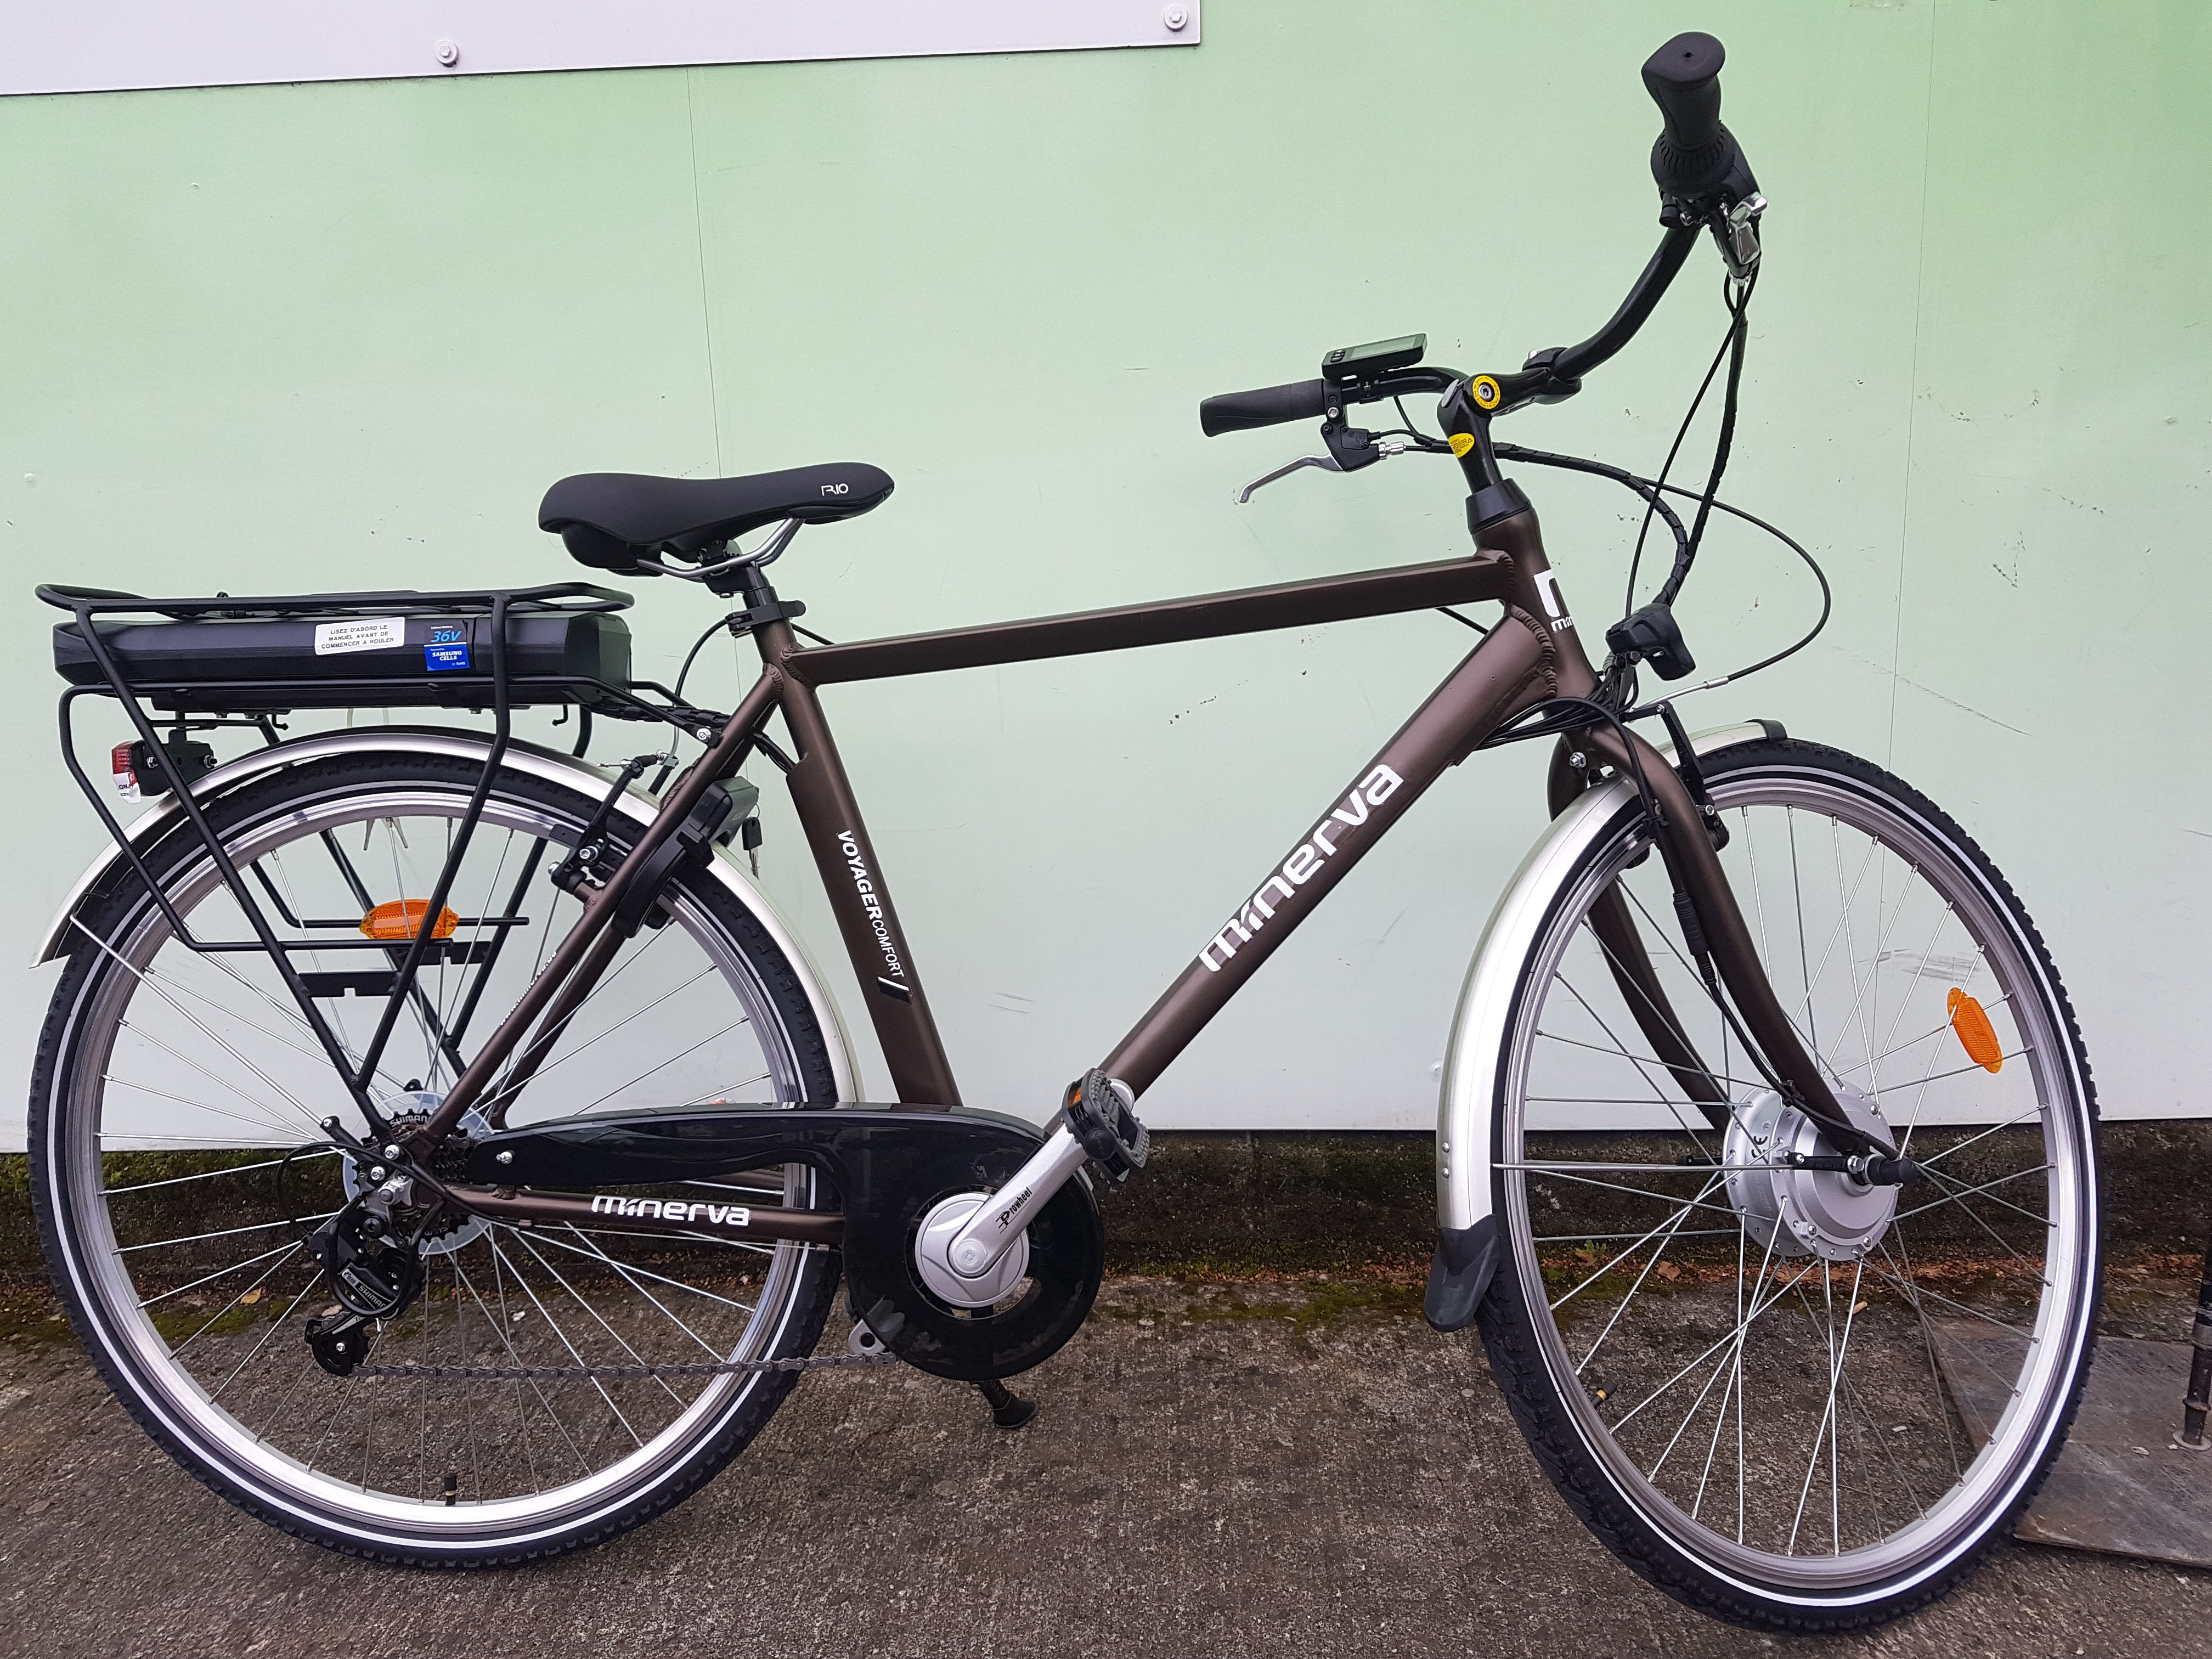 Minerva Gents Voyager Comfort E Bike Cahillcycles